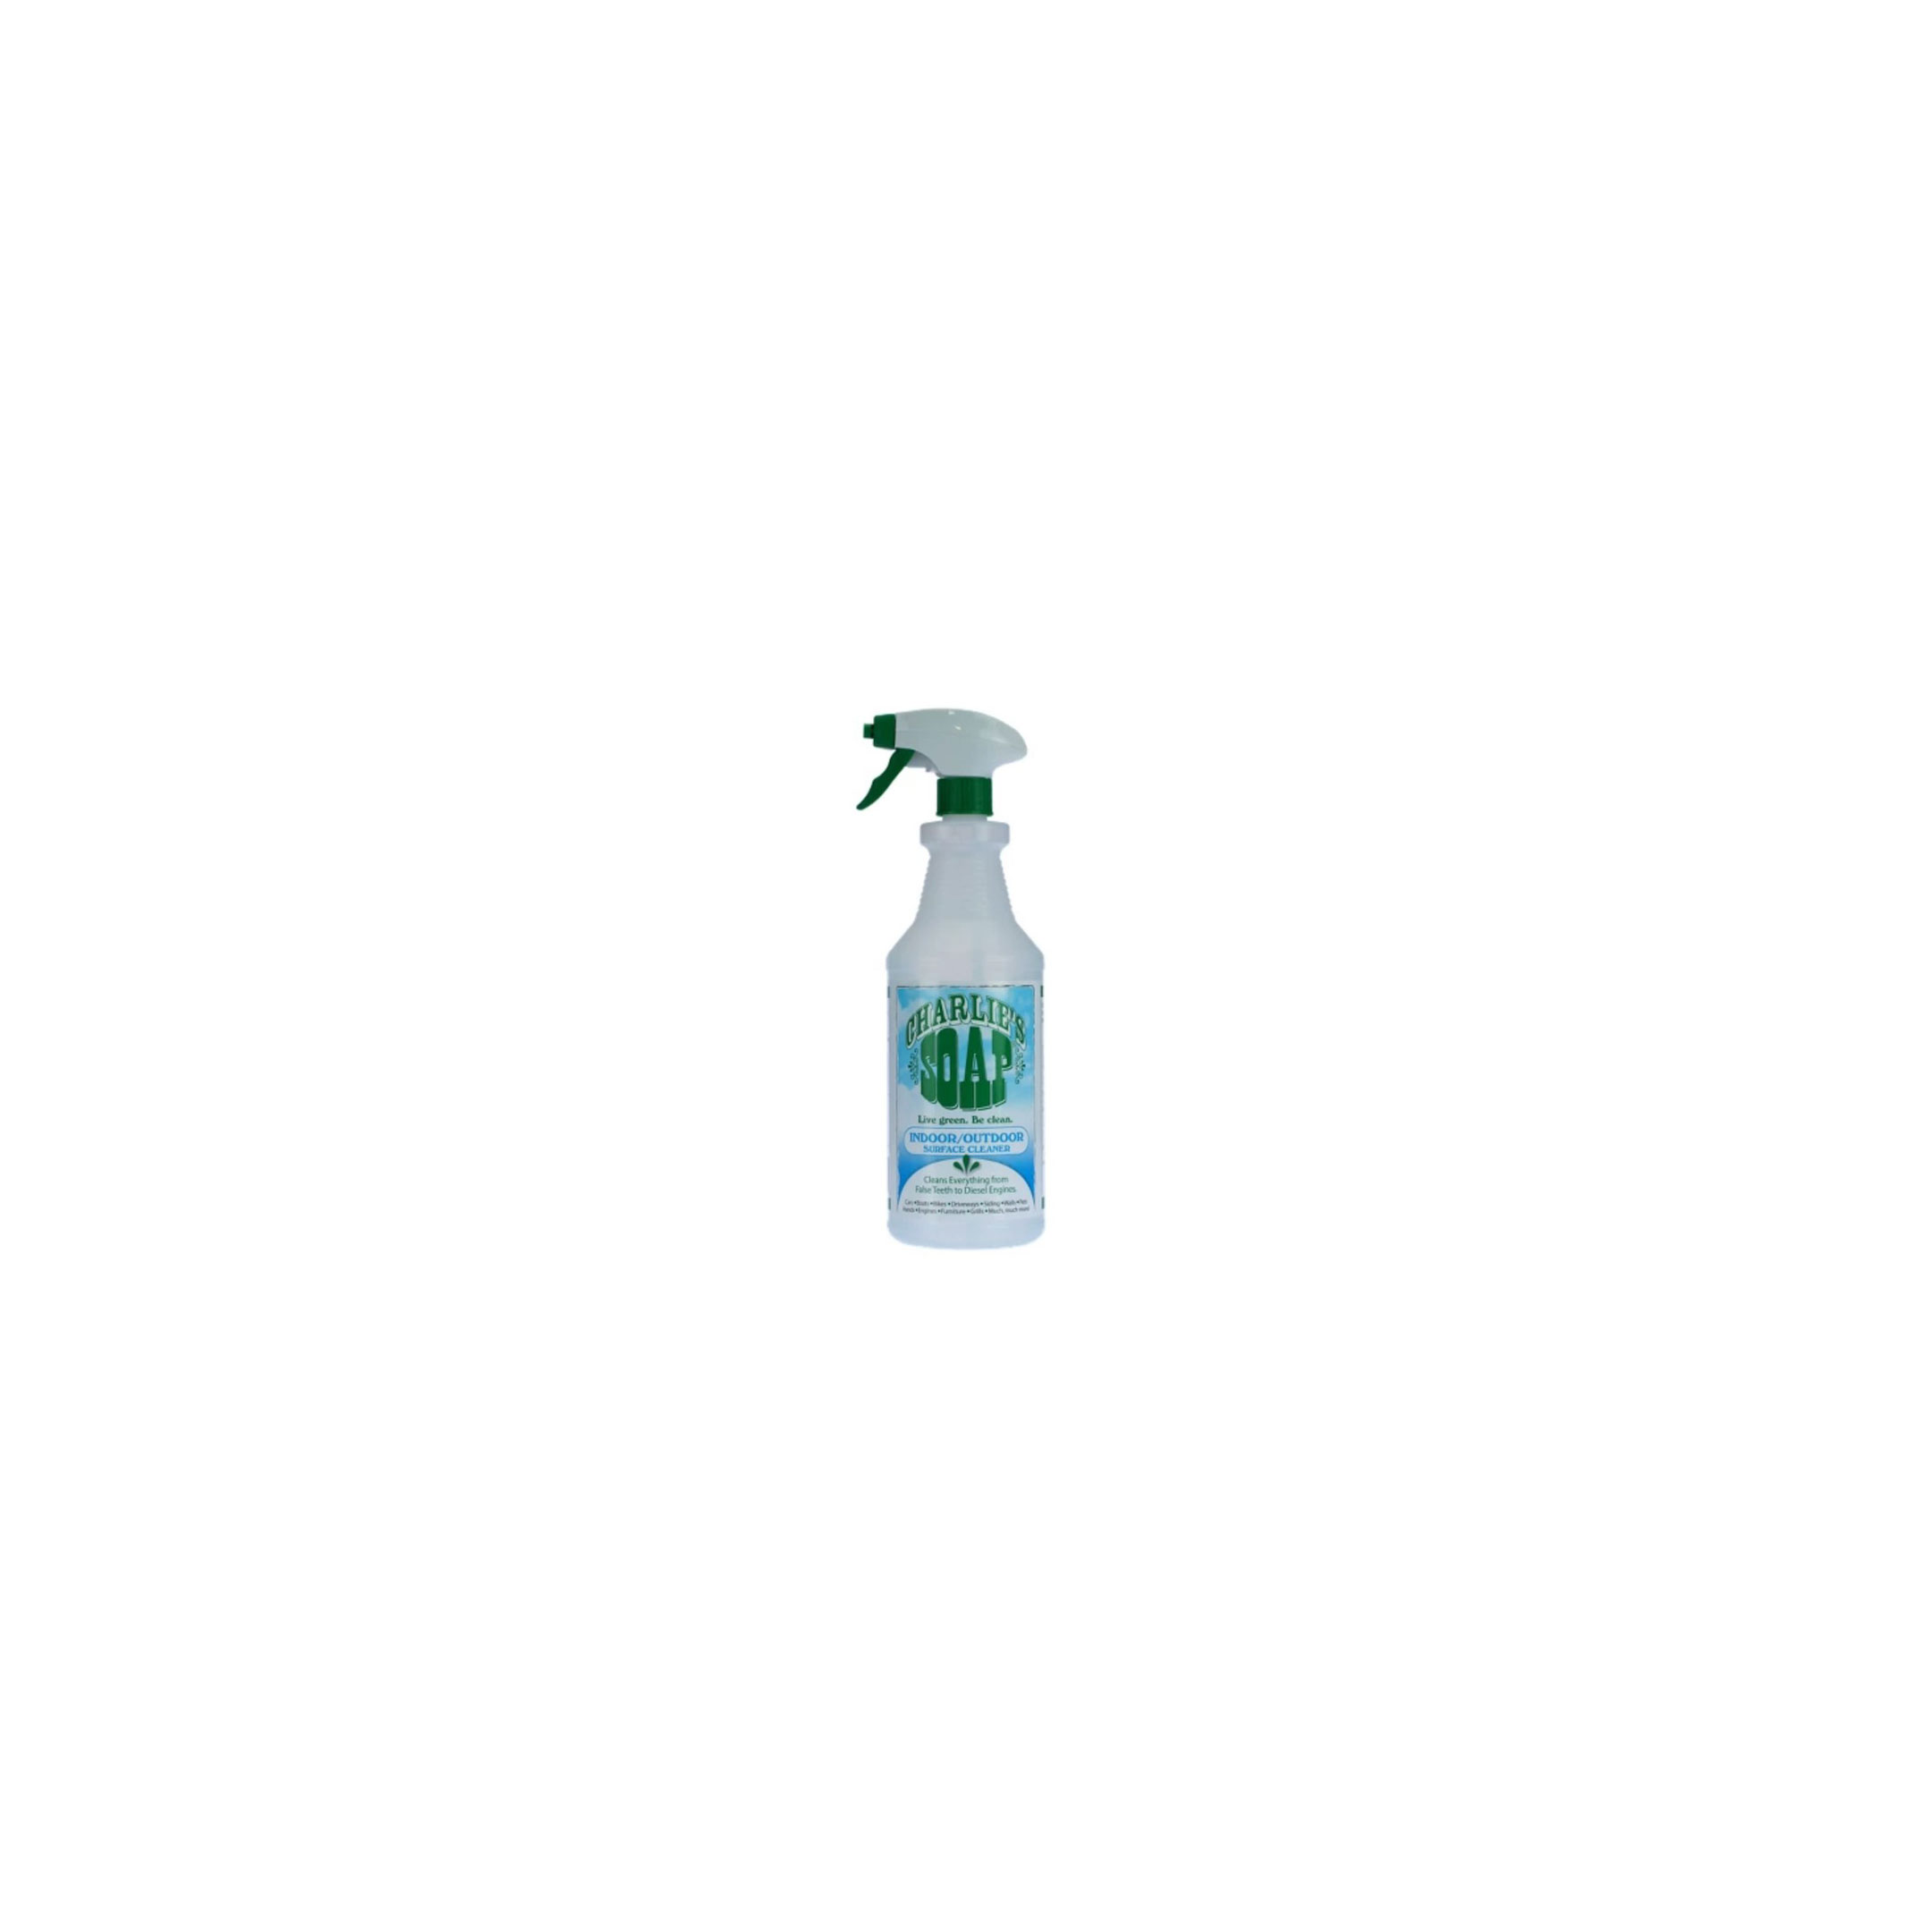 Charlie's Soap Indoor and Outdoor Surface Cleaner